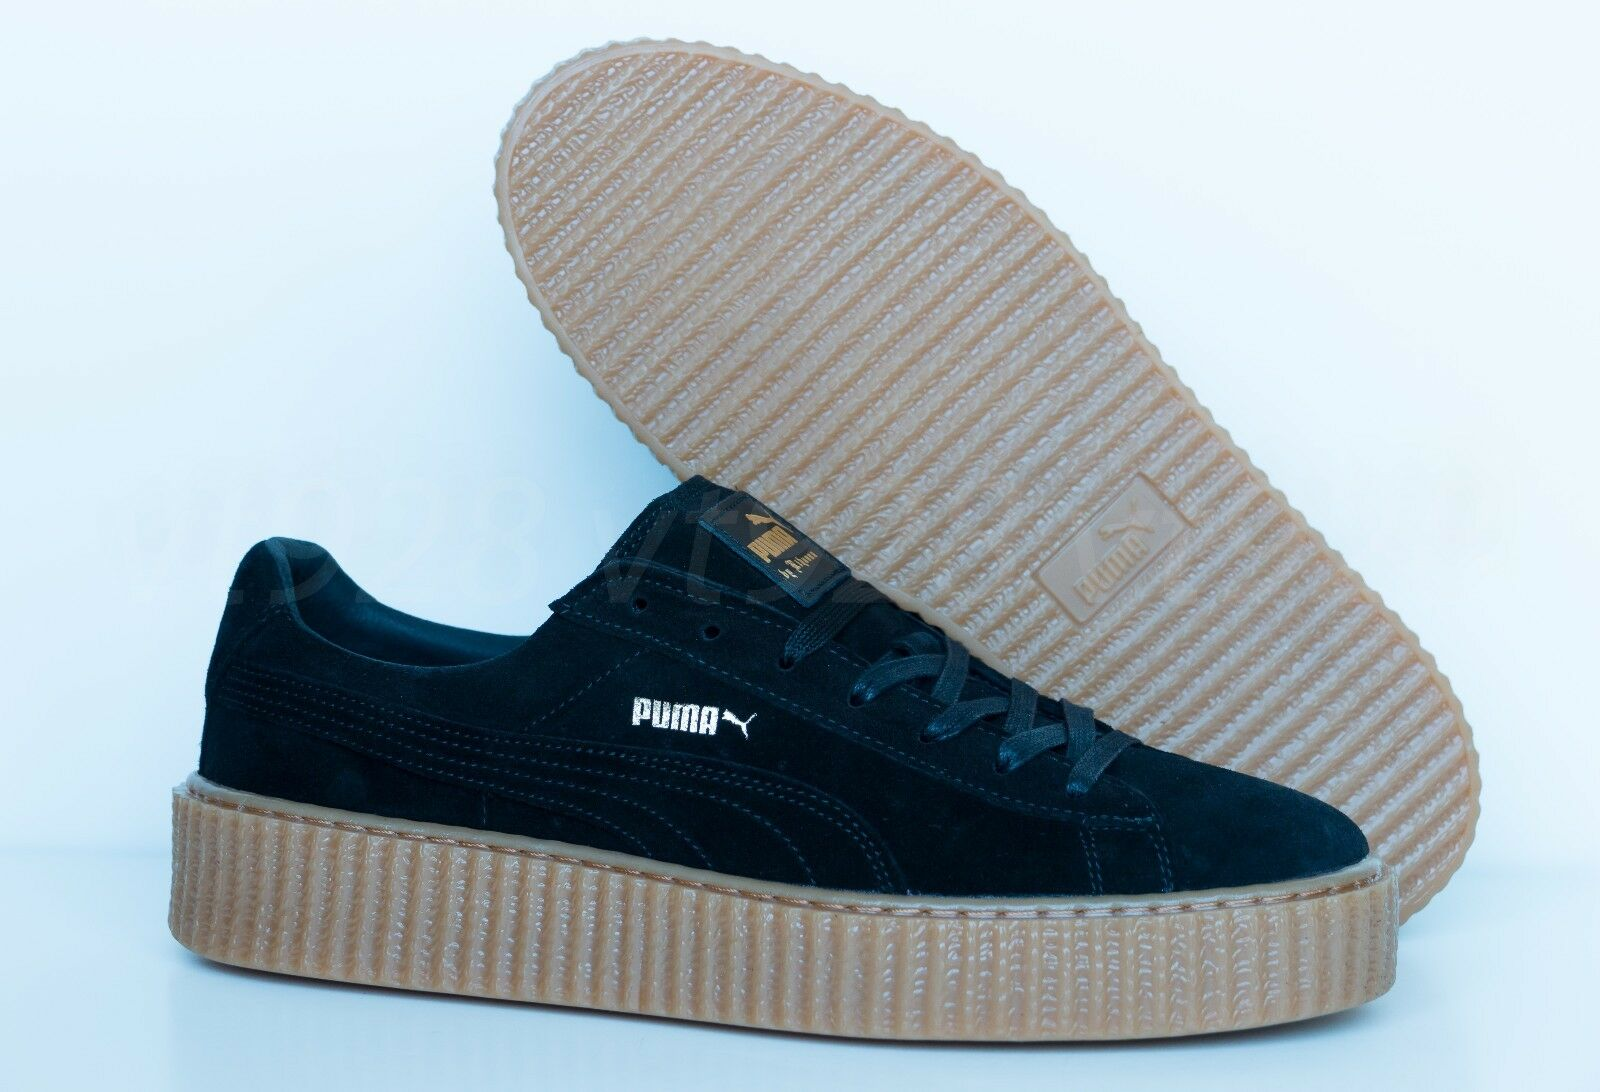 2f7de627d230 NEW PUMA FENTY BY BY BY RIHANNA CREEPERS SUEDE BLACK - OATMEAL MEN S SHOES  ALL SIZES